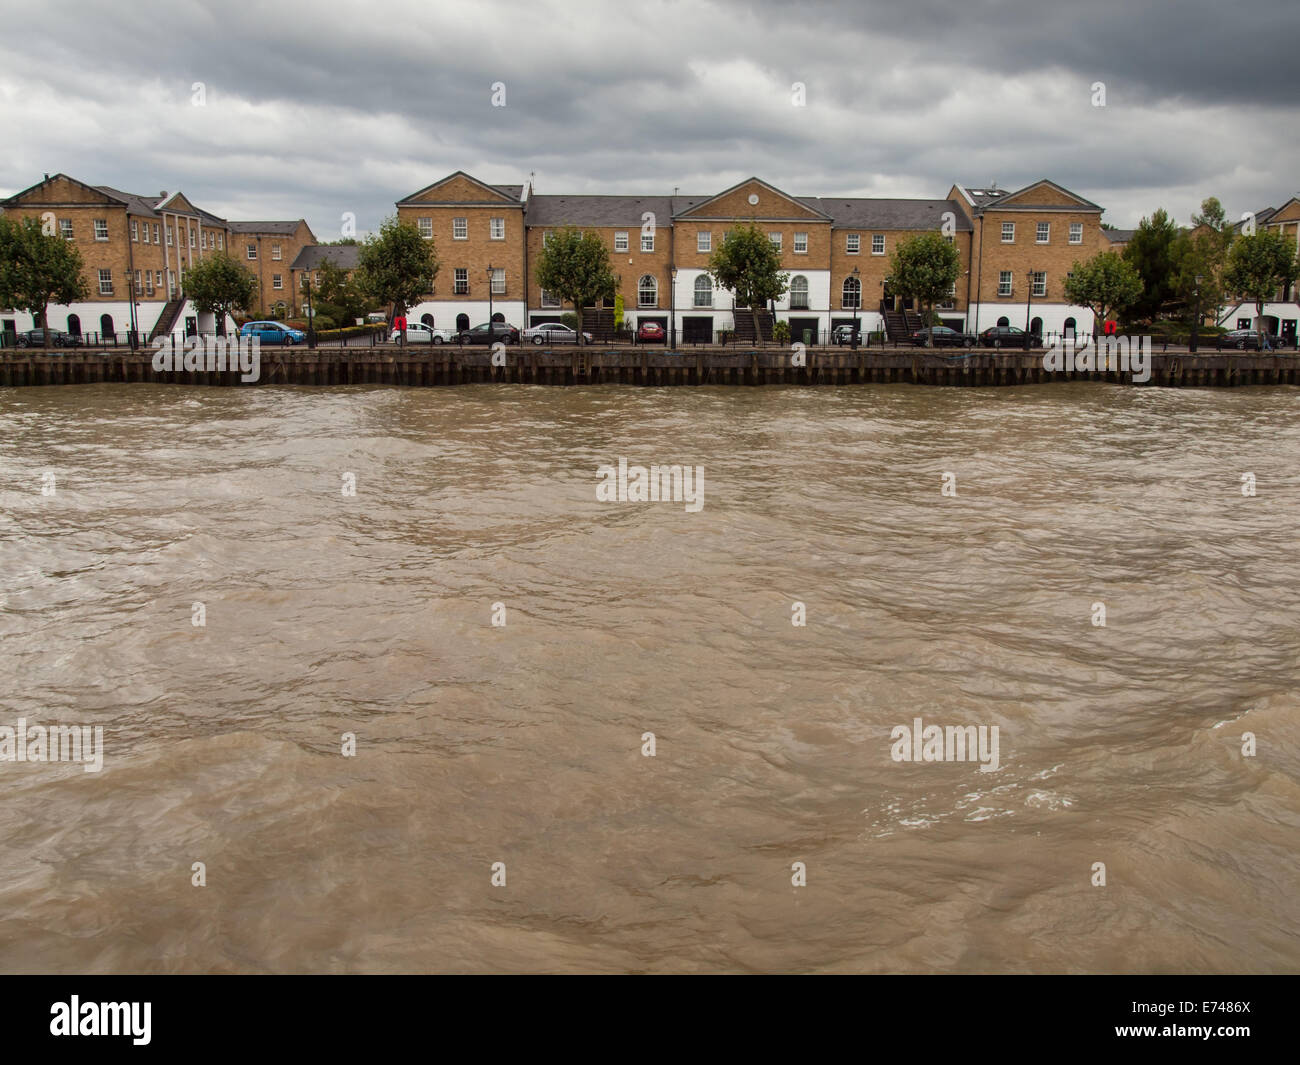 sovereign cresent rotherhithe viewed from the thames - Stock Image